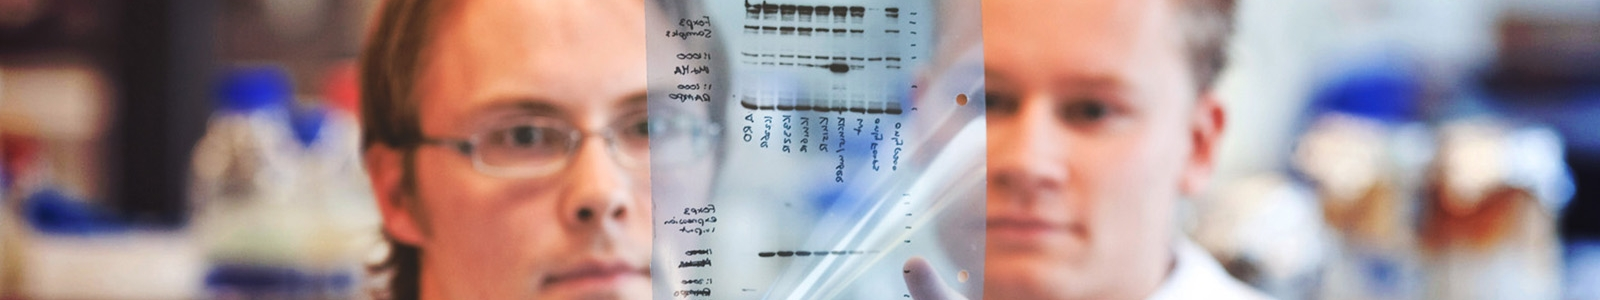 Masterstudents Infection and Immunity analysing lab results